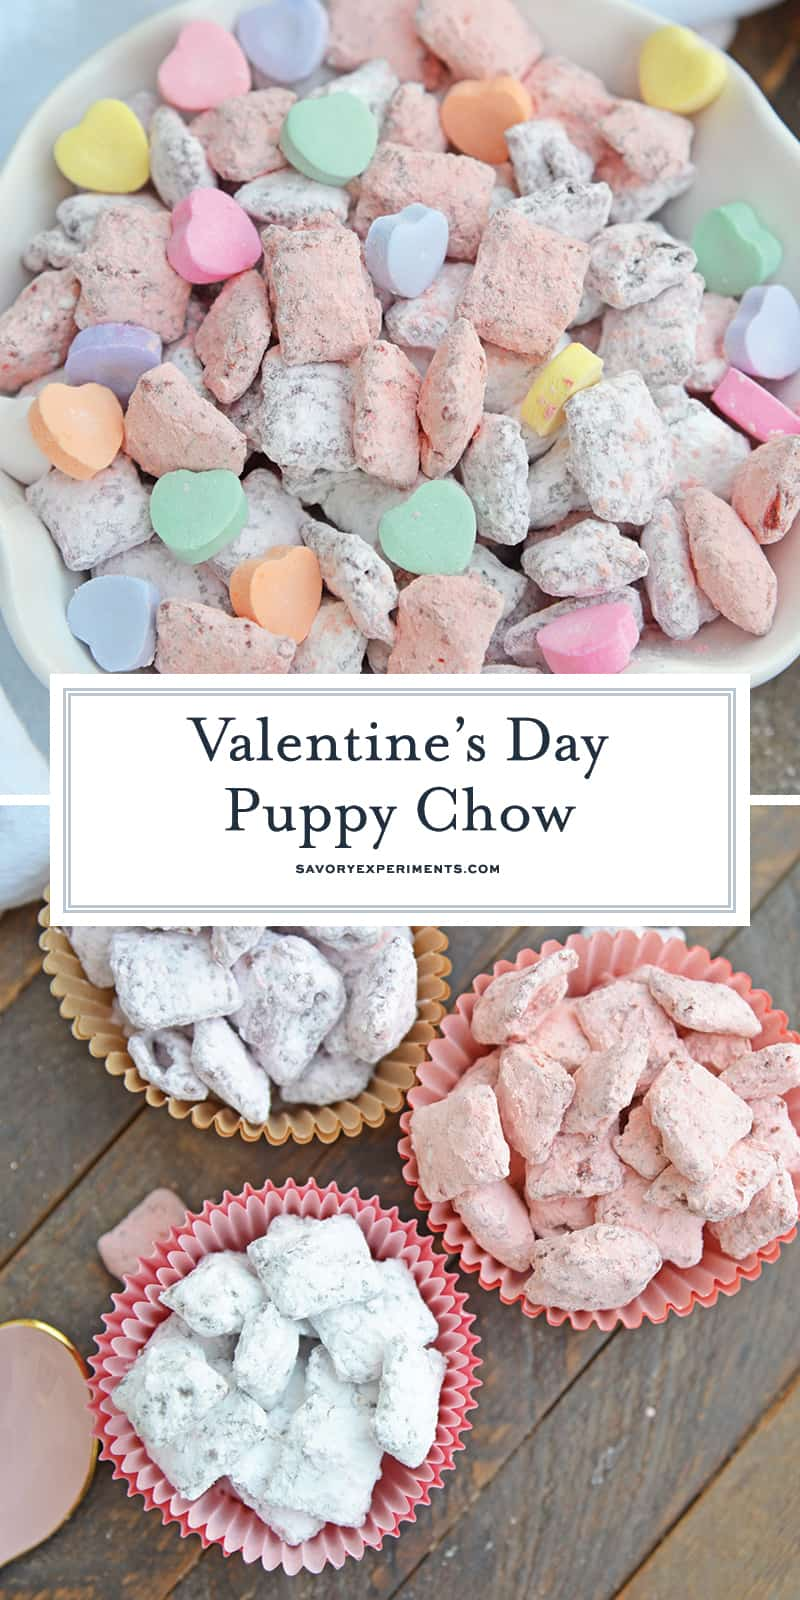 Valentine's Day Puppy Chow transforms a traditional muddy buddy recipe into a festive Cupid Crunch mix! The perfect no-bake dessert for any Valentine's Day party. #puppychow #valentinesdaydesserts #muddybuddy #nobakedesserts www.savoryexperiments.com